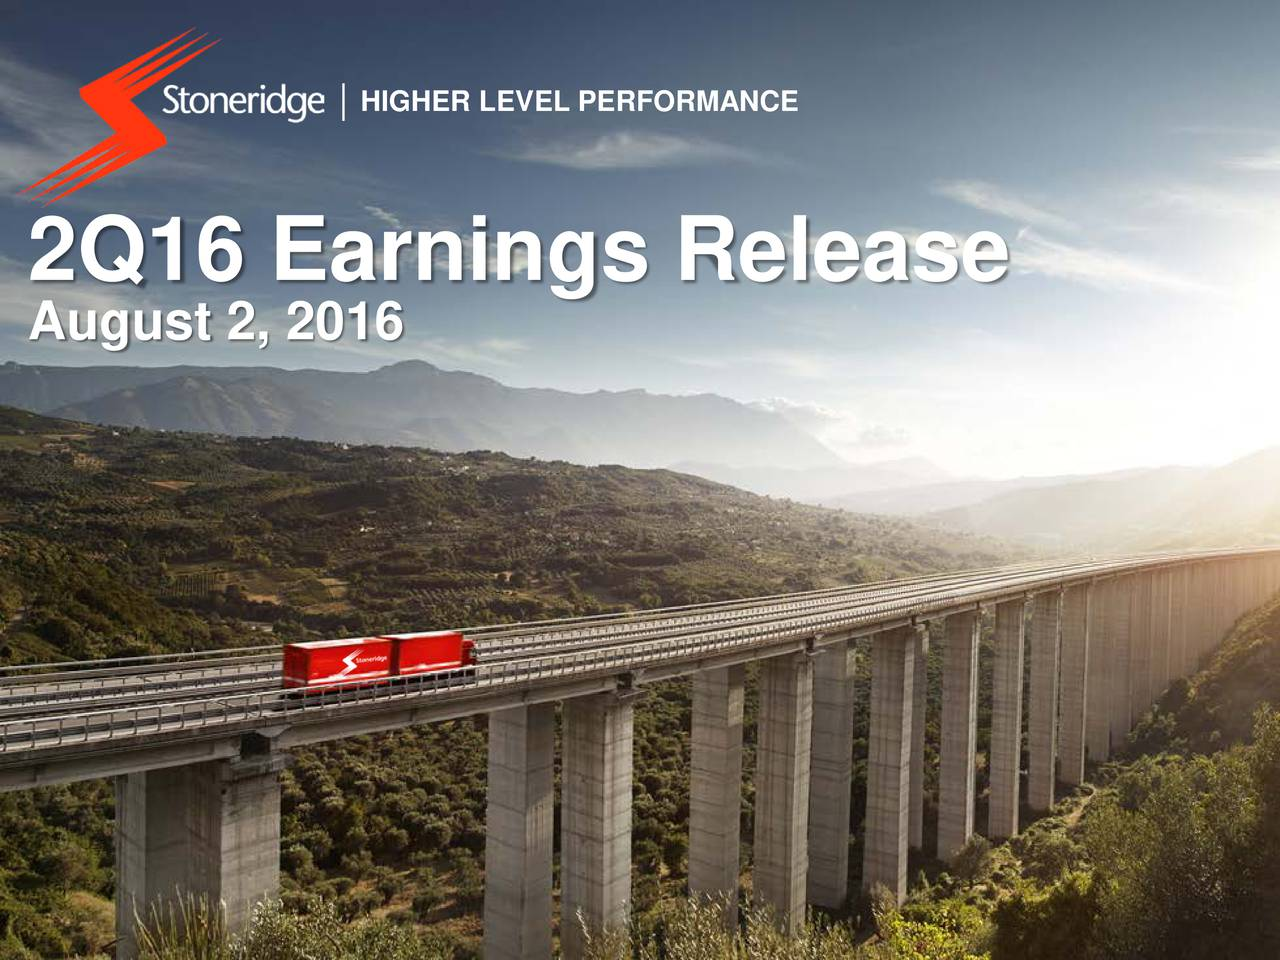 2Q16 Earnings Release August 2, 2016